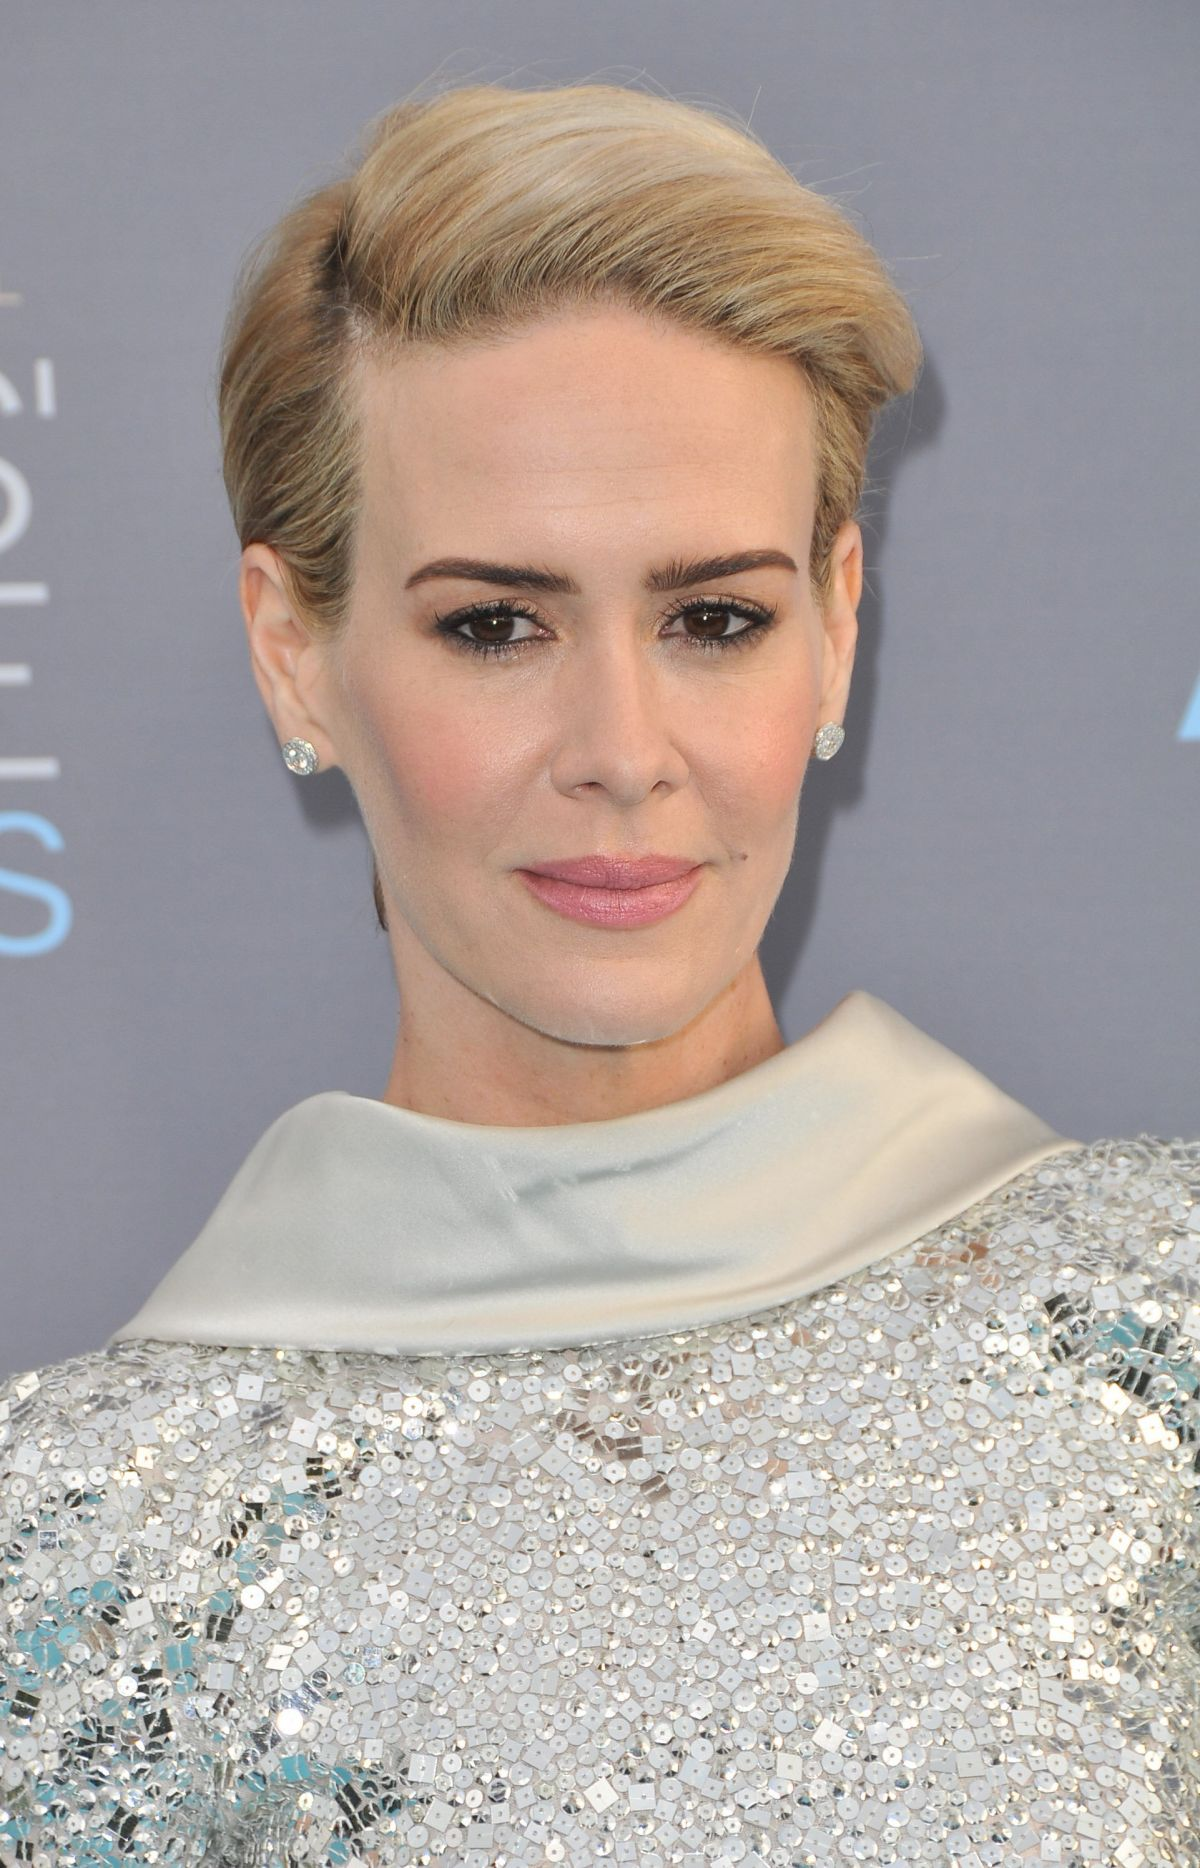 The 42-year old daughter of father (?) and mother(?), 172 cm tall Sarah Paulson in 2017 photo